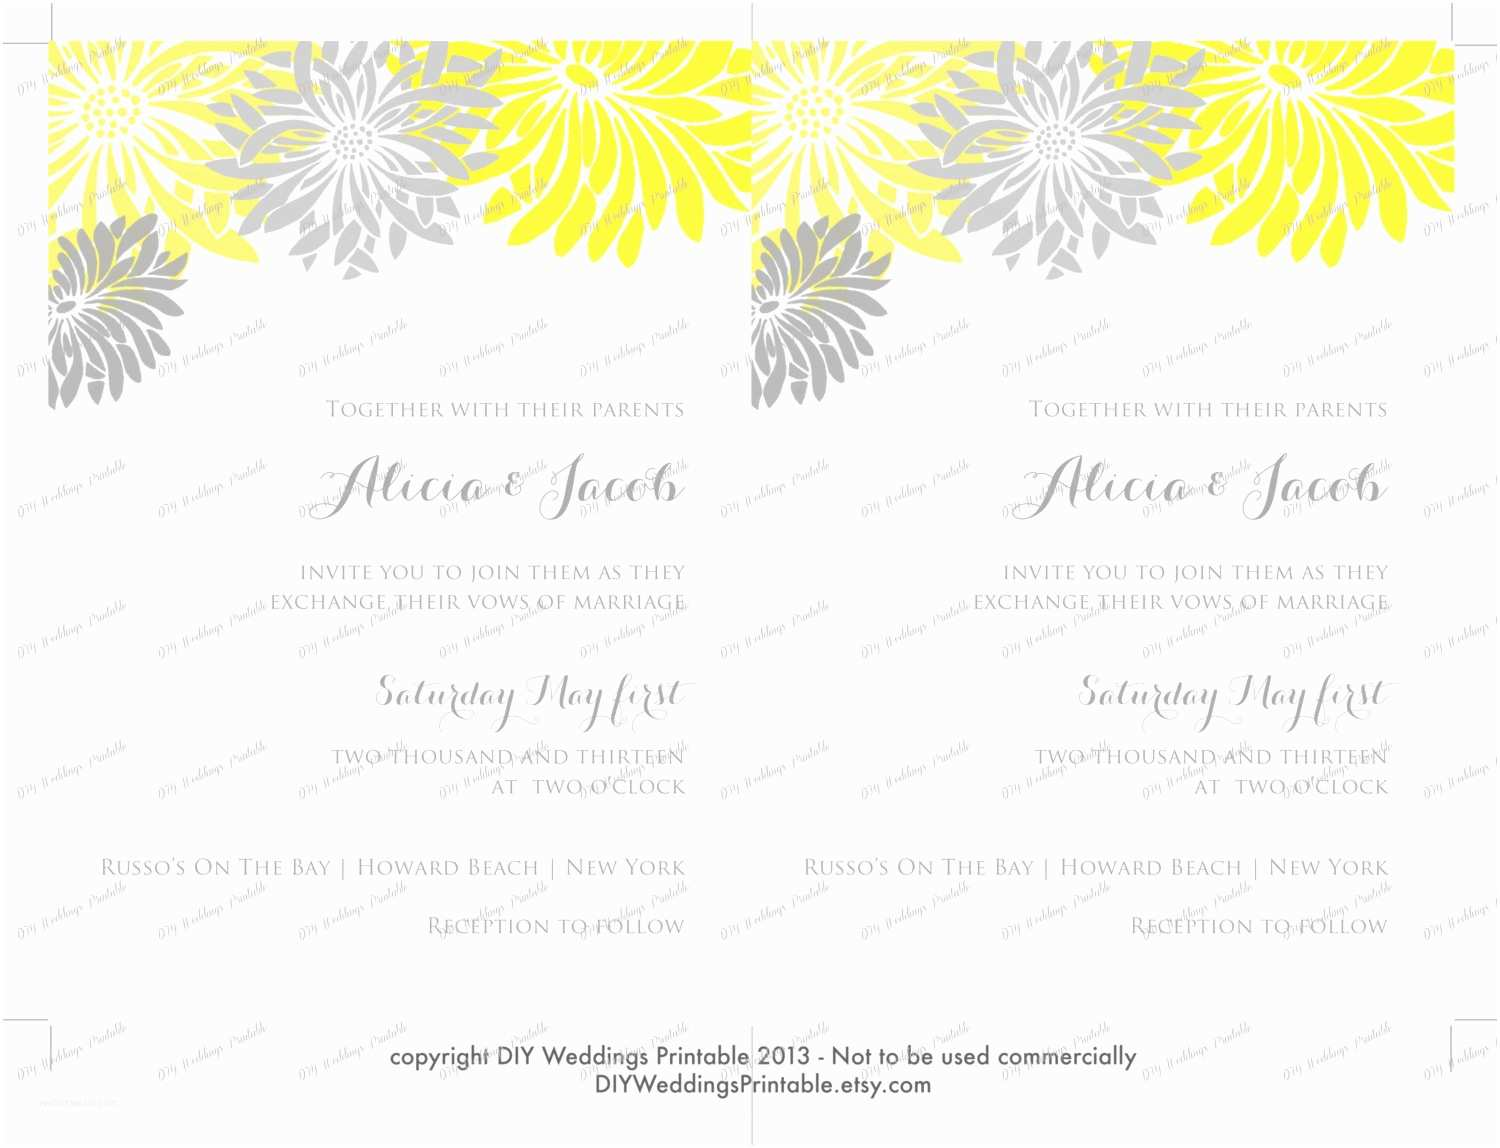 Digital Wedding Invitations Free Digital Wedding Invitation Templates Yaseen for